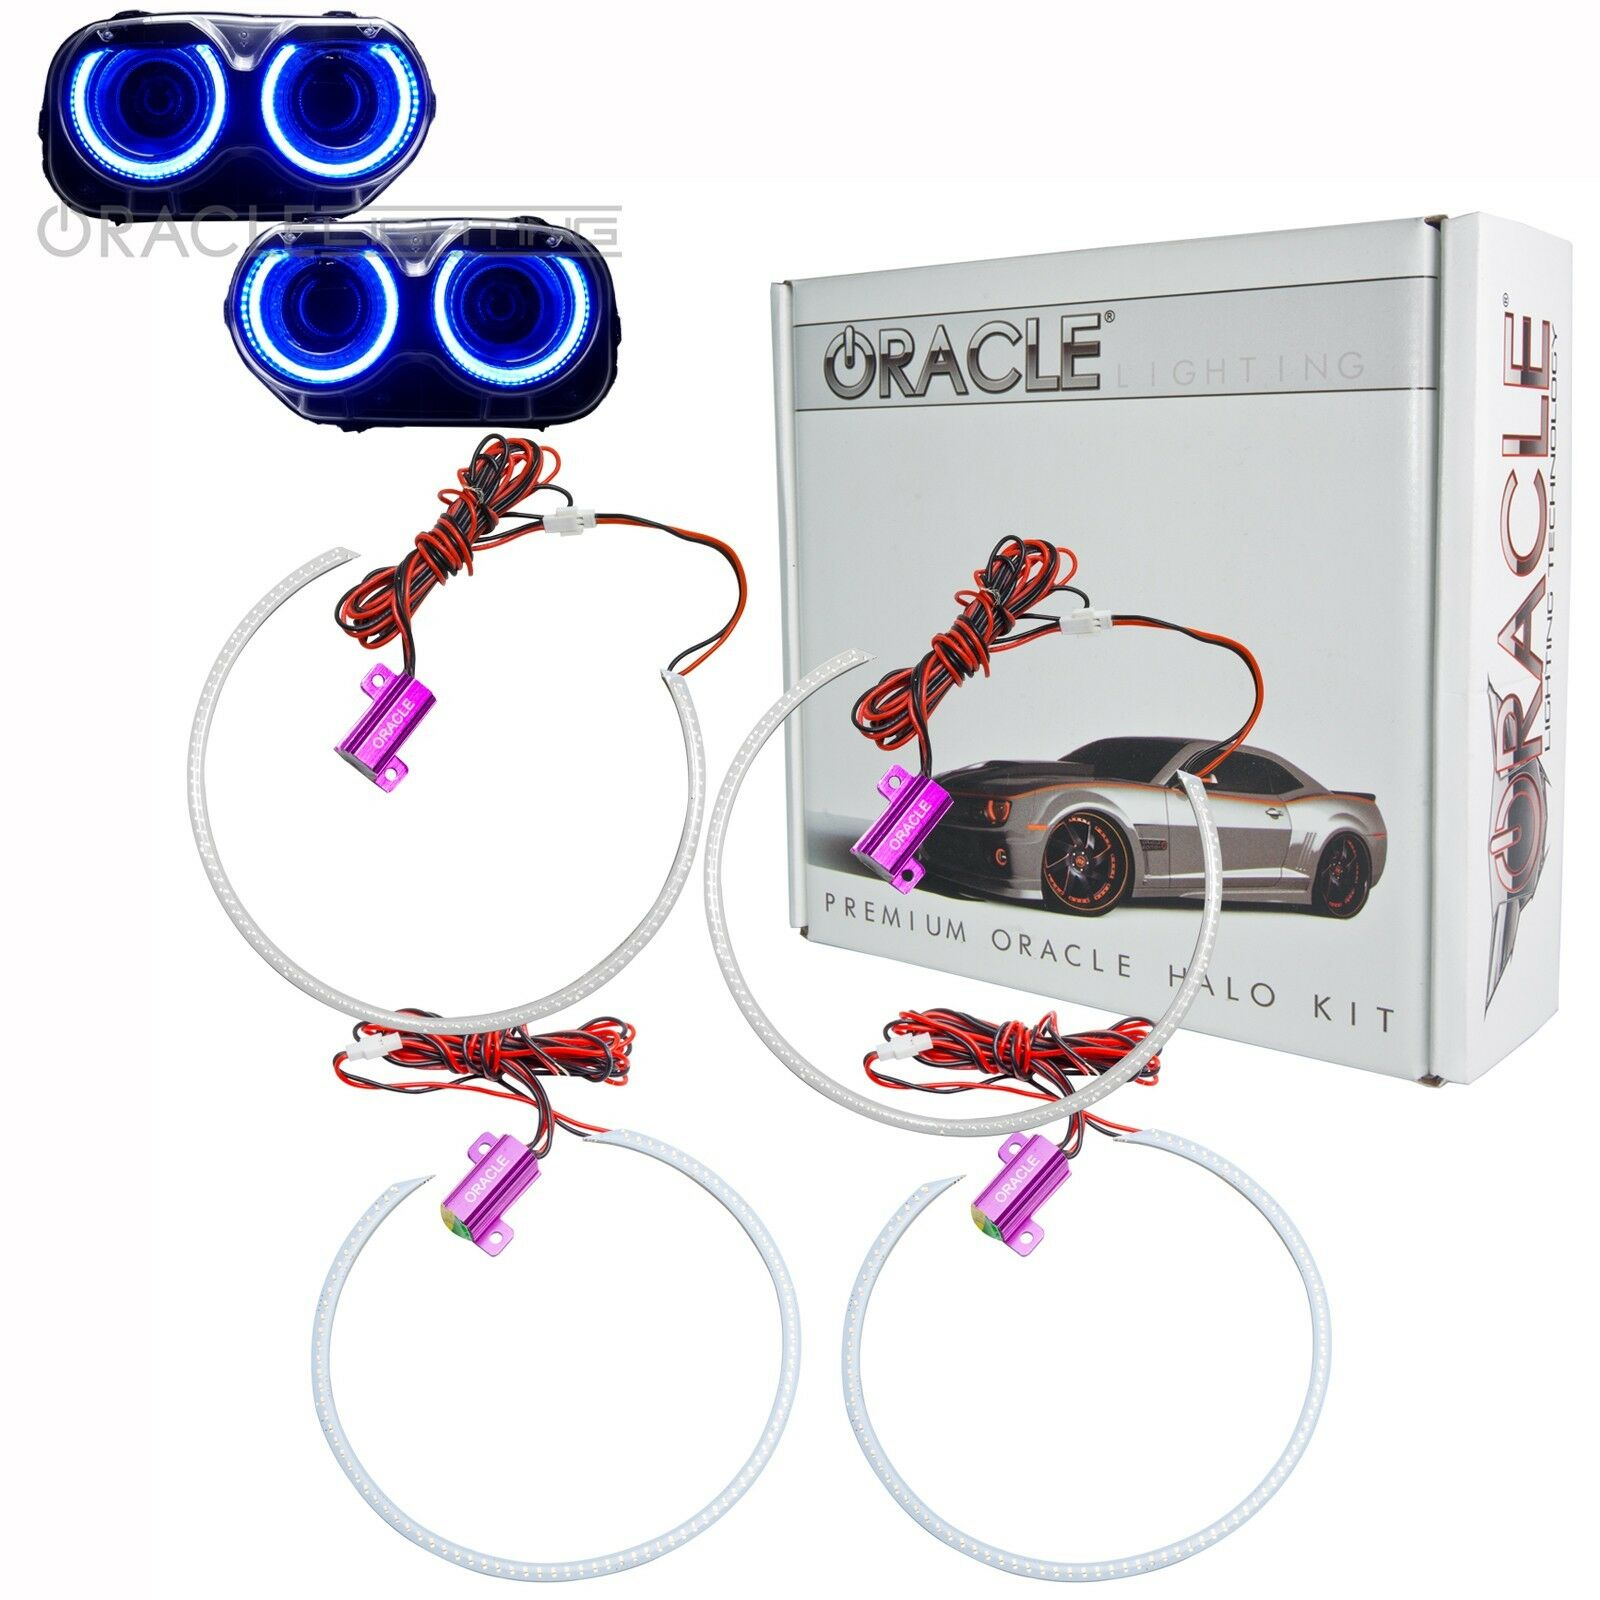 Acura Dealer In Brooklyn: ORACLE Halos For Headlights For 15-19 Dodge Challenger